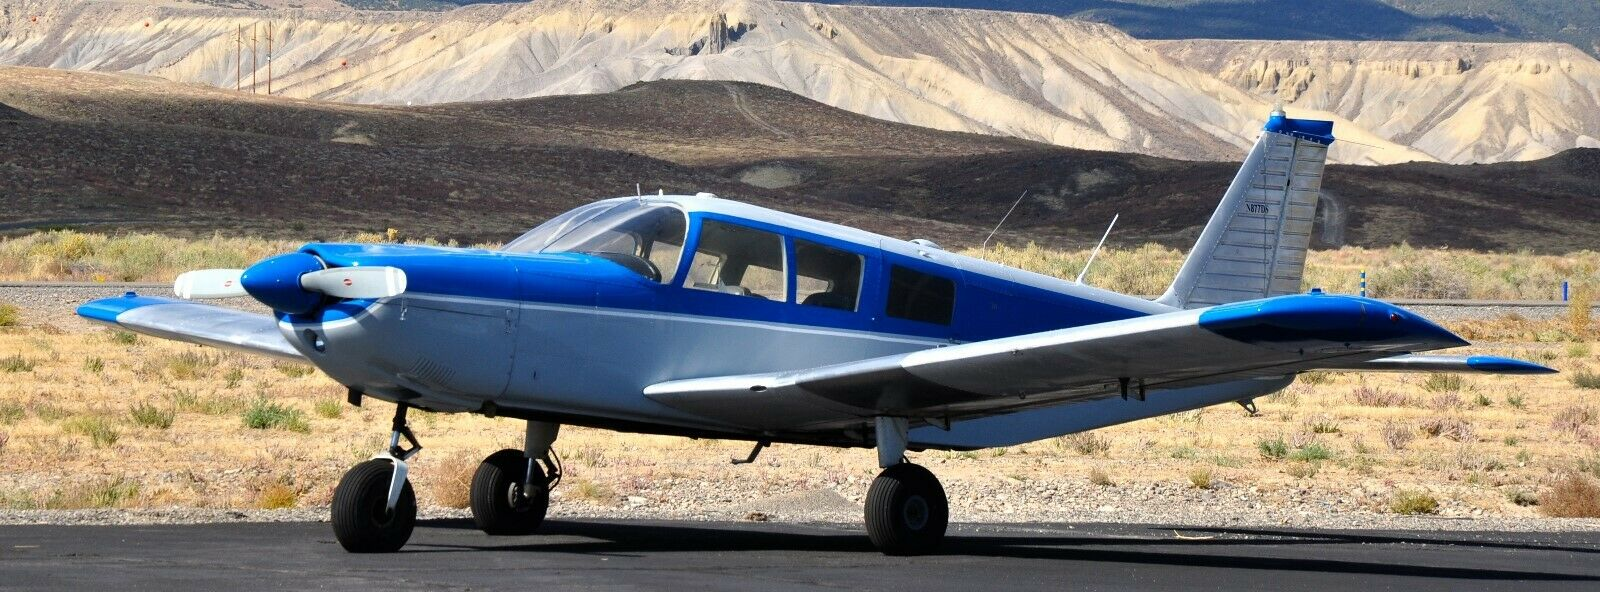 new parts 1967 Piper PA 32 Cherokee aircraft for sale